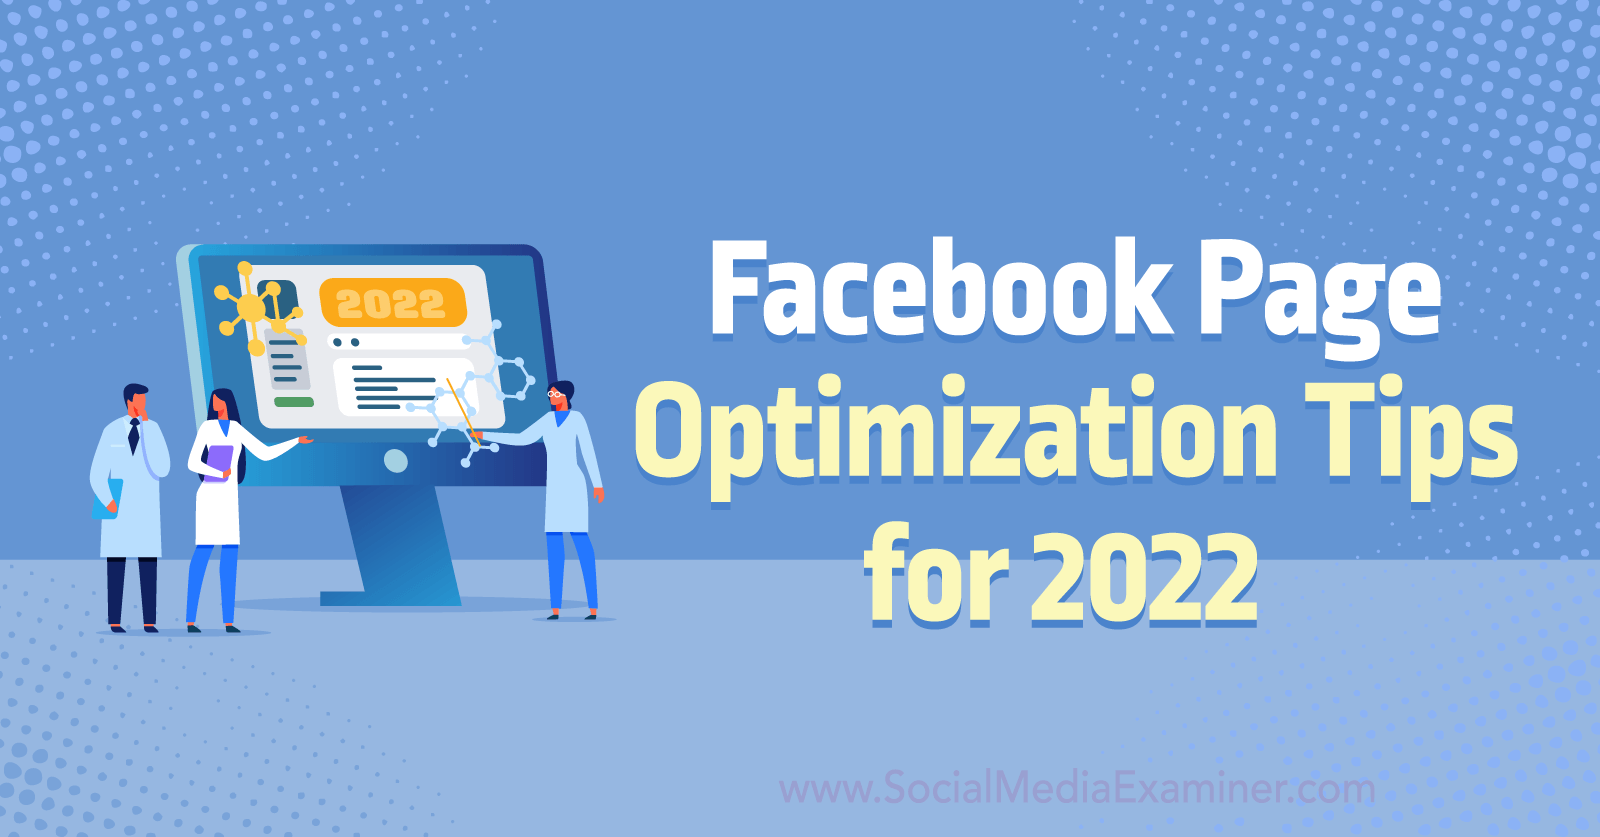 Facebook Page Optimization Tips for 2022 by Anna Sonnenberg on Social Media Examiner.